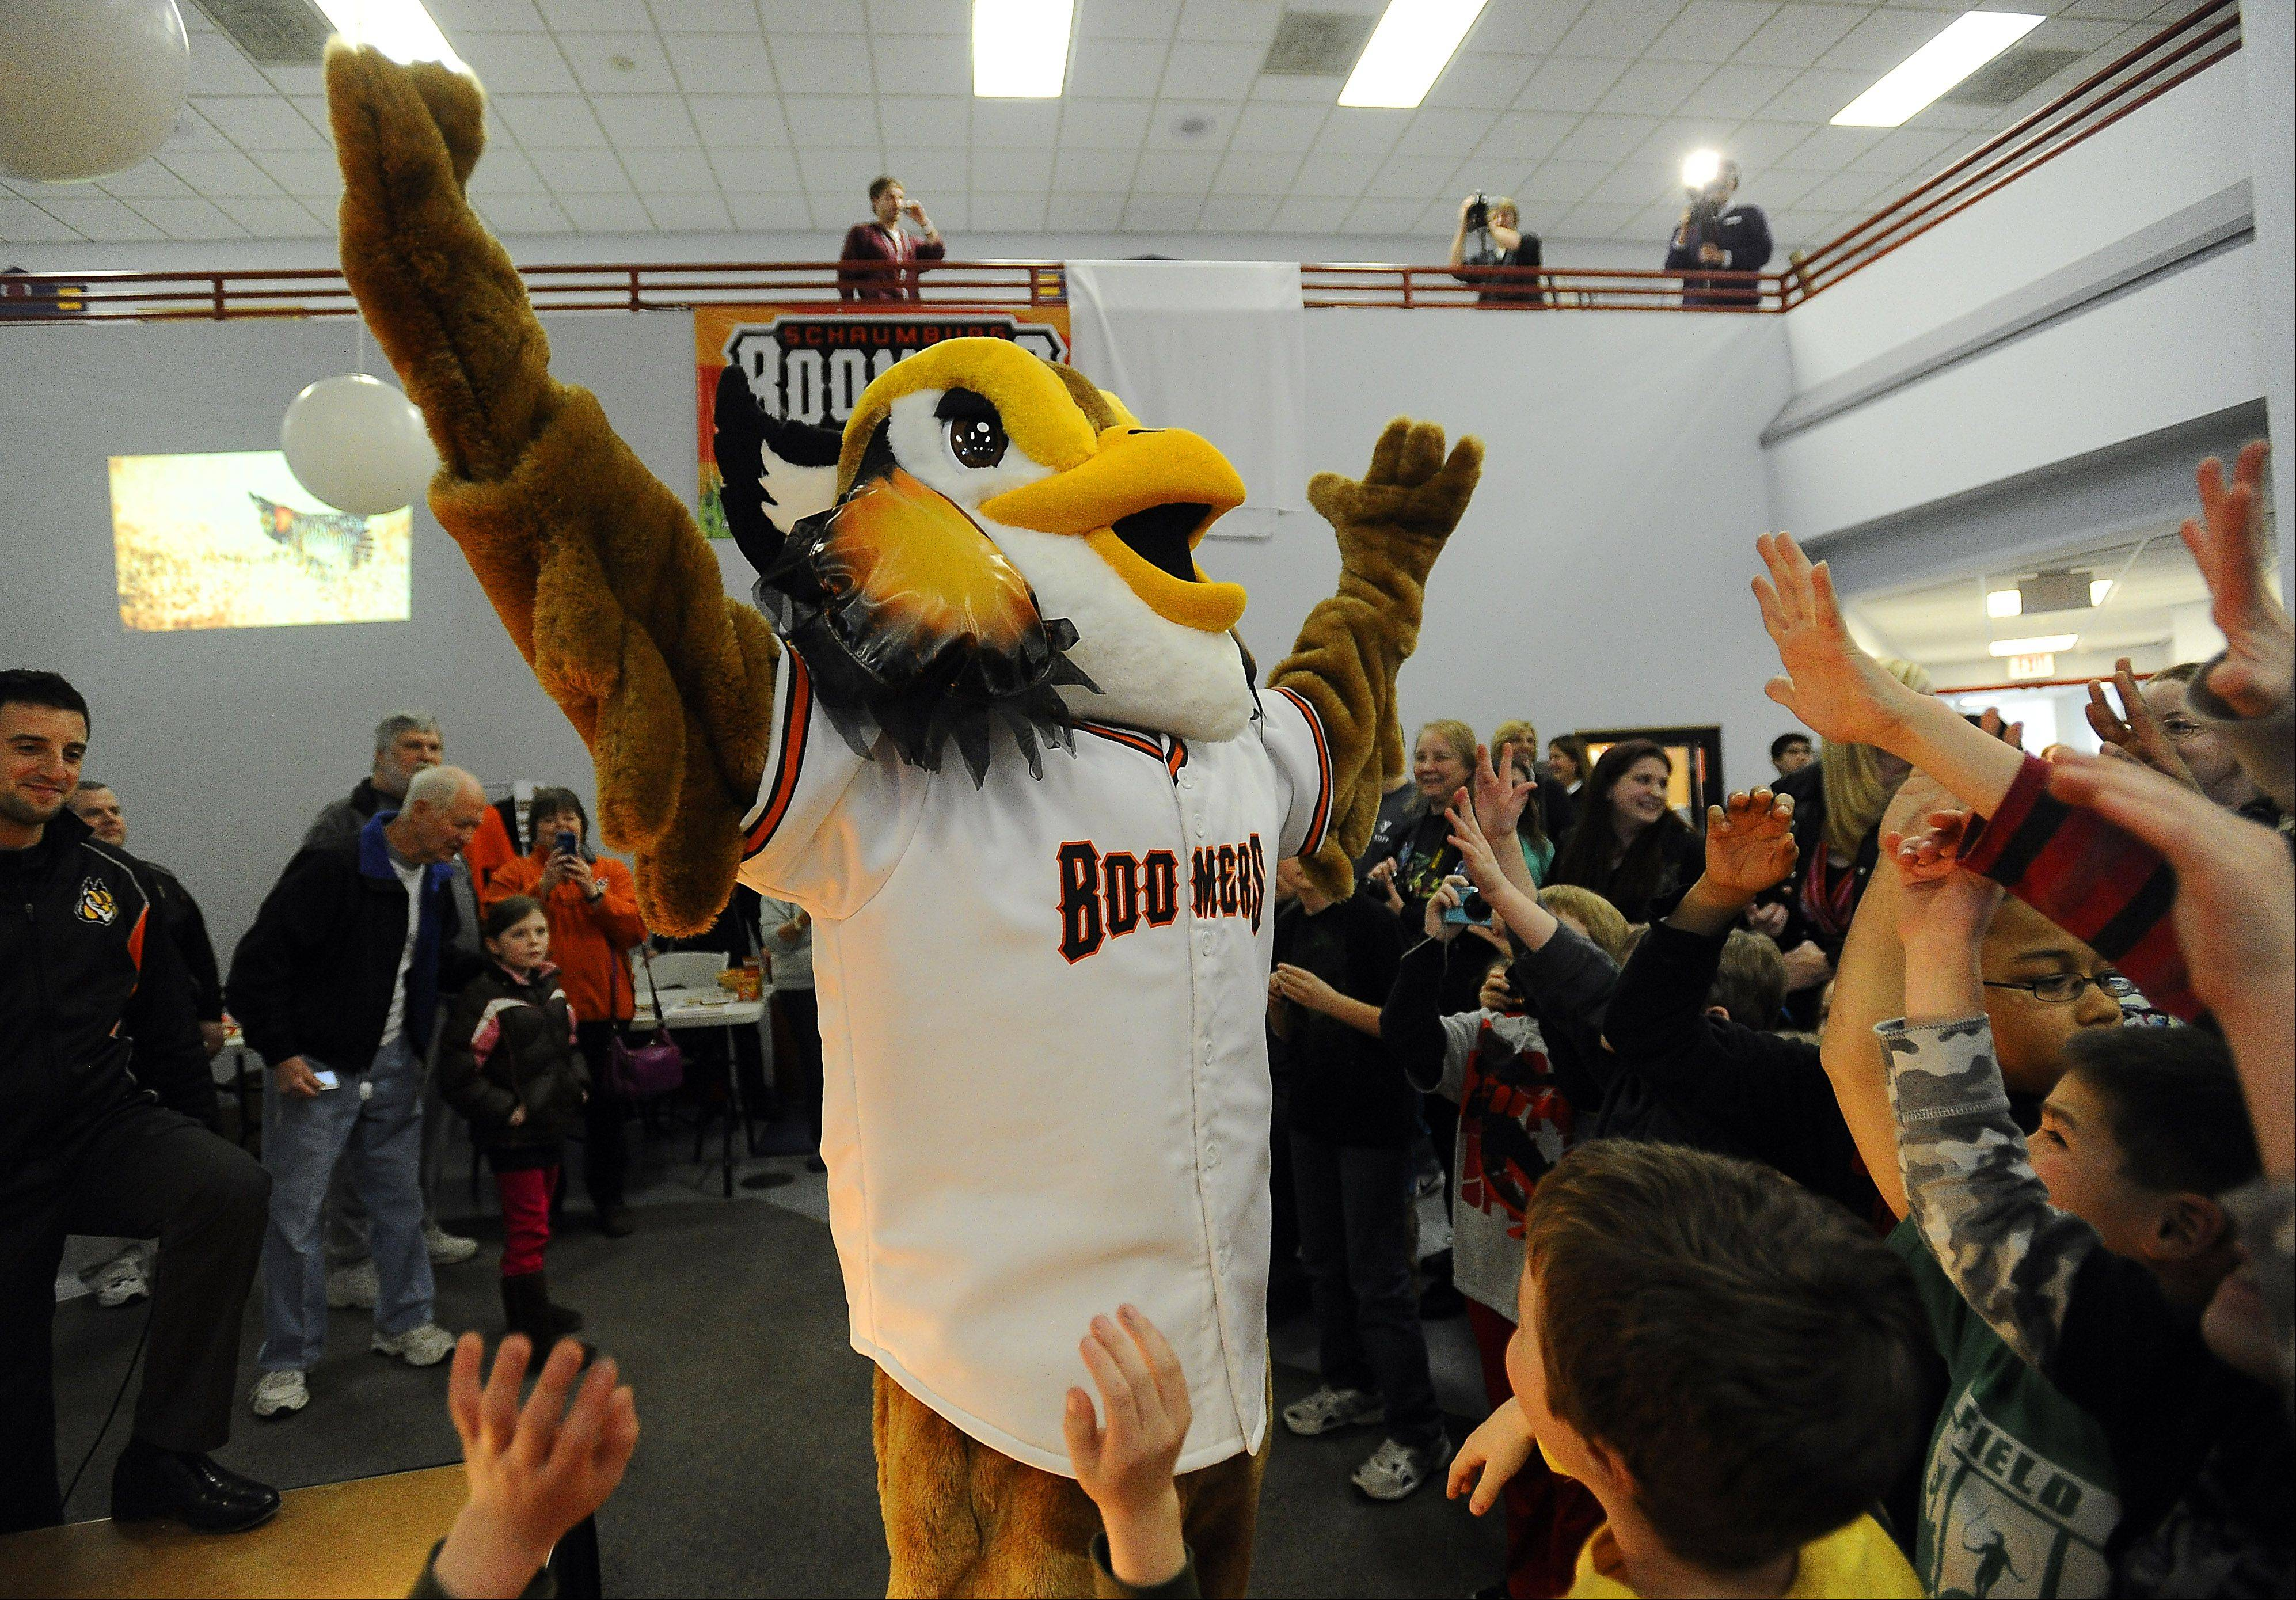 Coop, the Schaumburg Boomers' new mascot, was introduced Thursday at the Schaumburg Park District's Community Recreation Center, to the delight of baseball fans young and old.